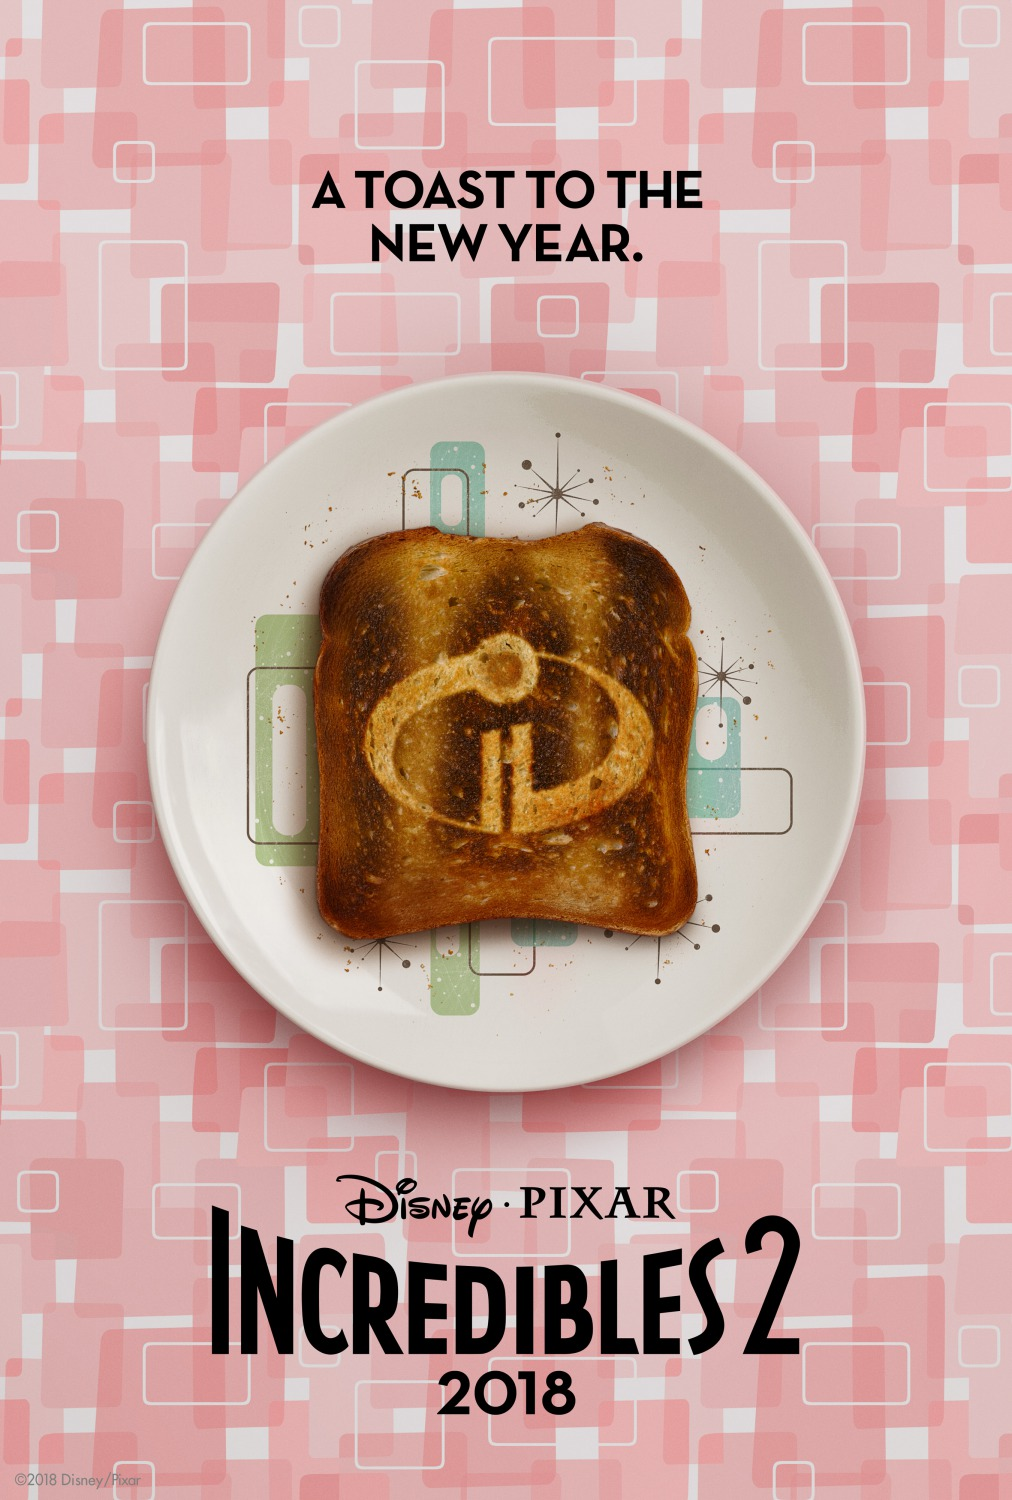 1 incredibles 2 top movie posters of 2018